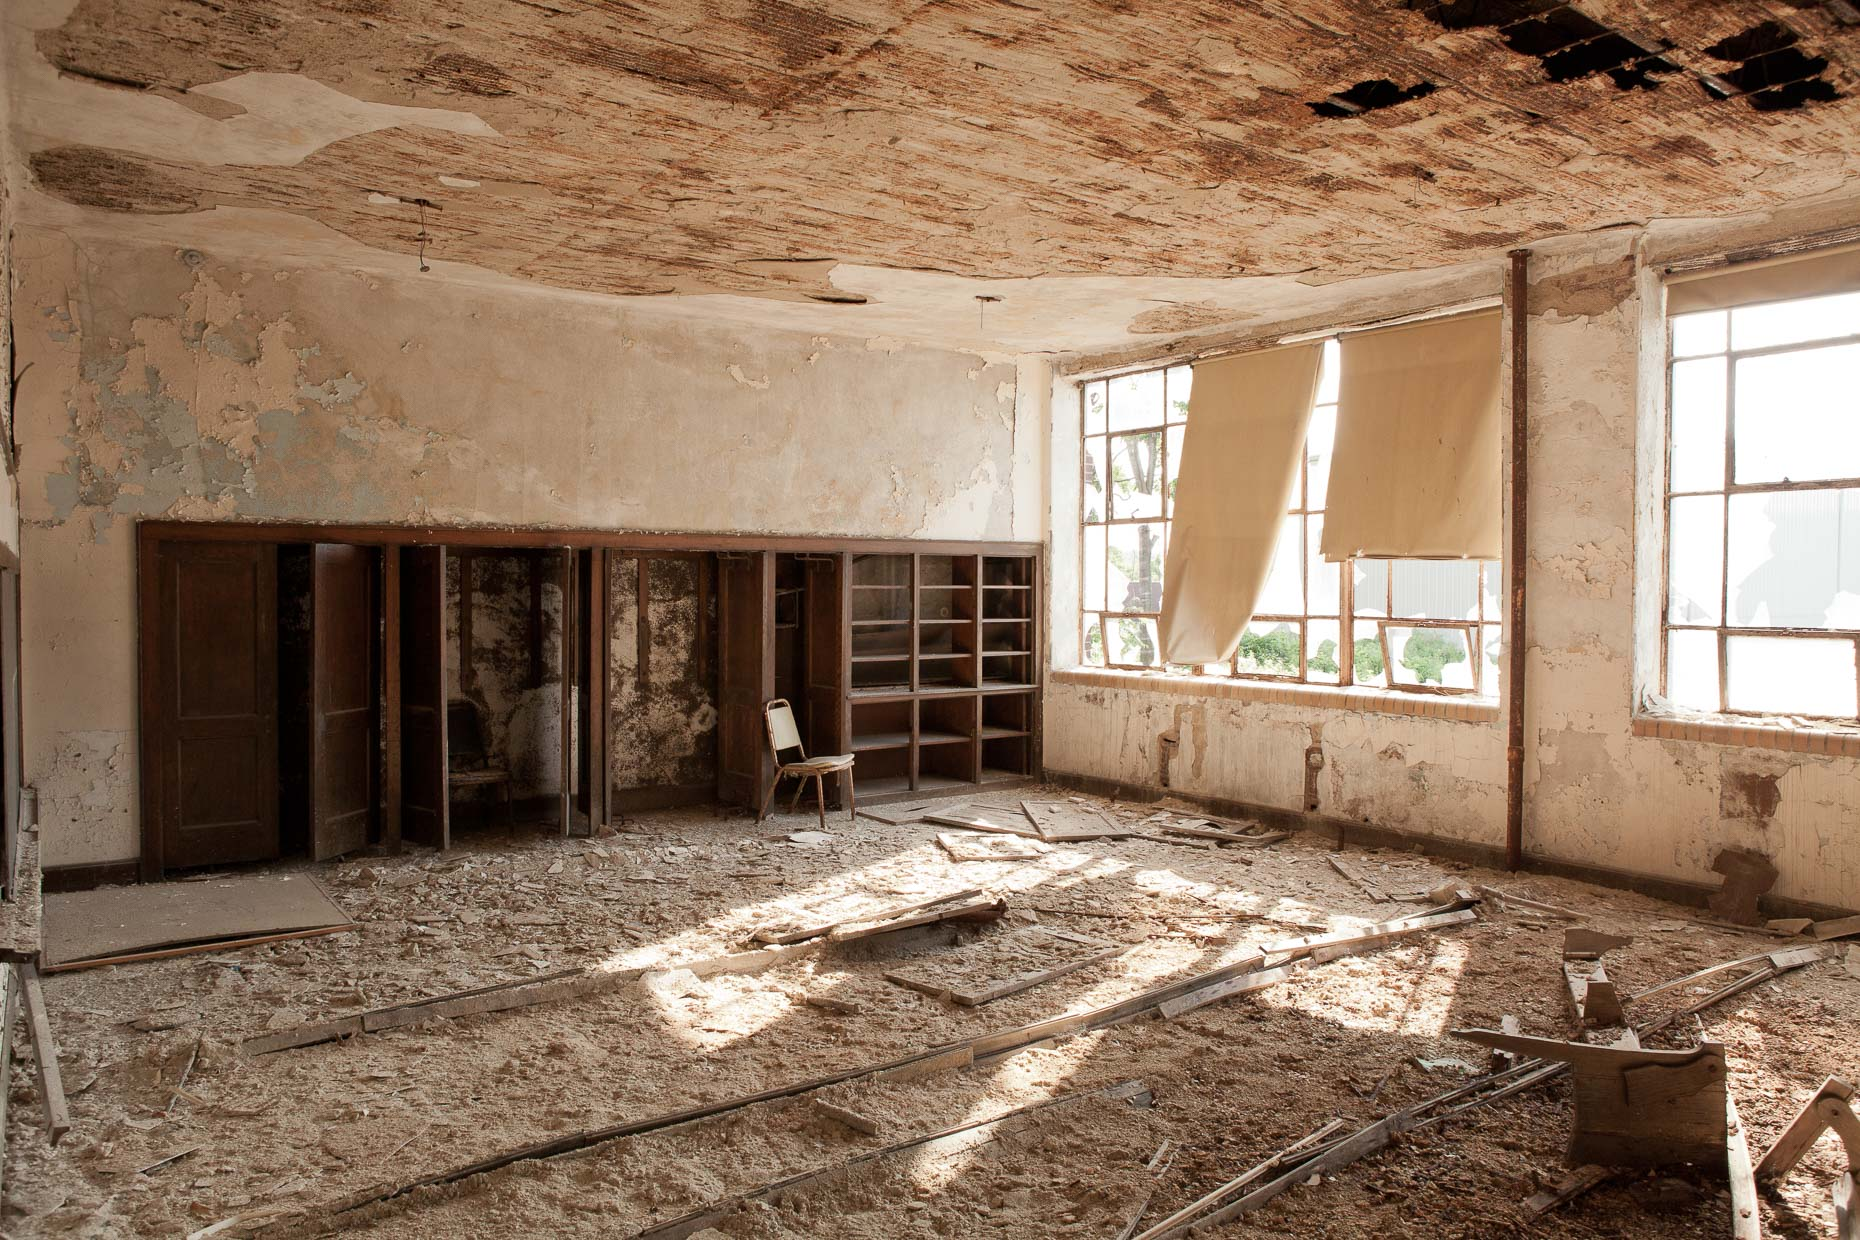 Interior classroom in abandoned school with peeling paint by David Zaitz